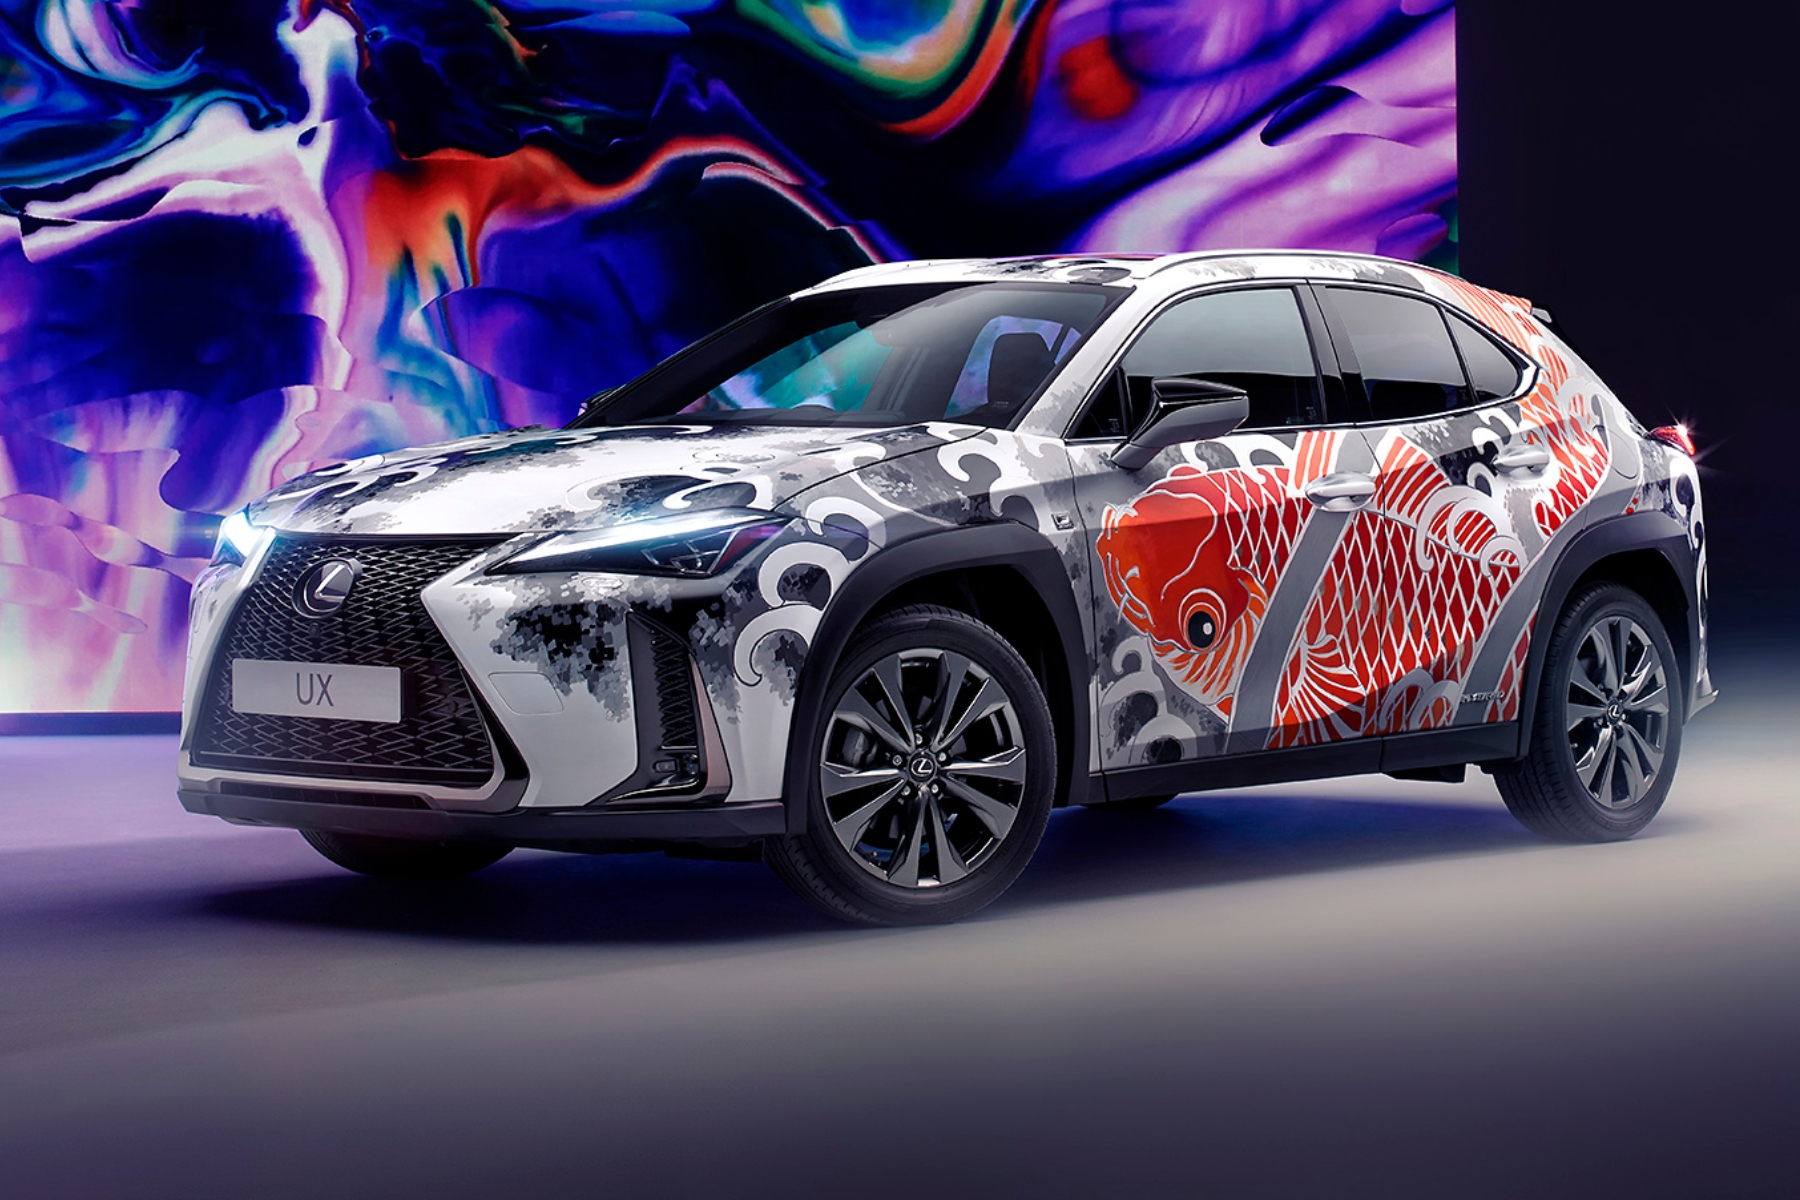 Lexus UX - world's first tattooed car